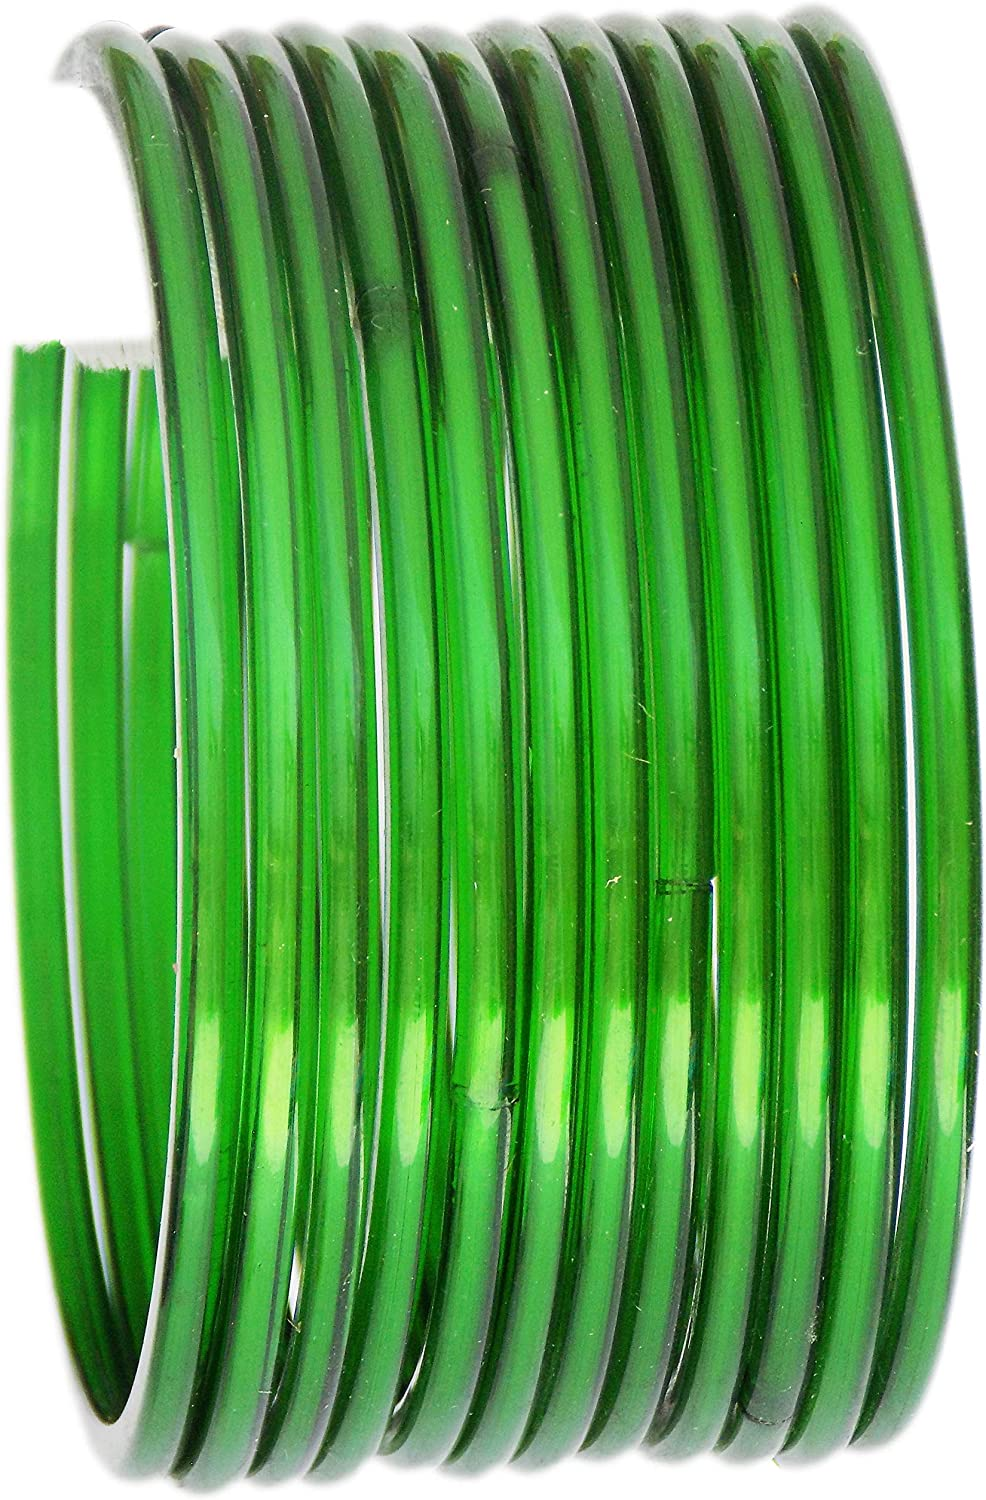 JD'Z Collection Traditional Indian Glass Bangles for Women/Girls- Bollywood Fashion Jewelry Green Bangals, Plain Thick Churi Ethnic Wedding Wear, Size-2.6